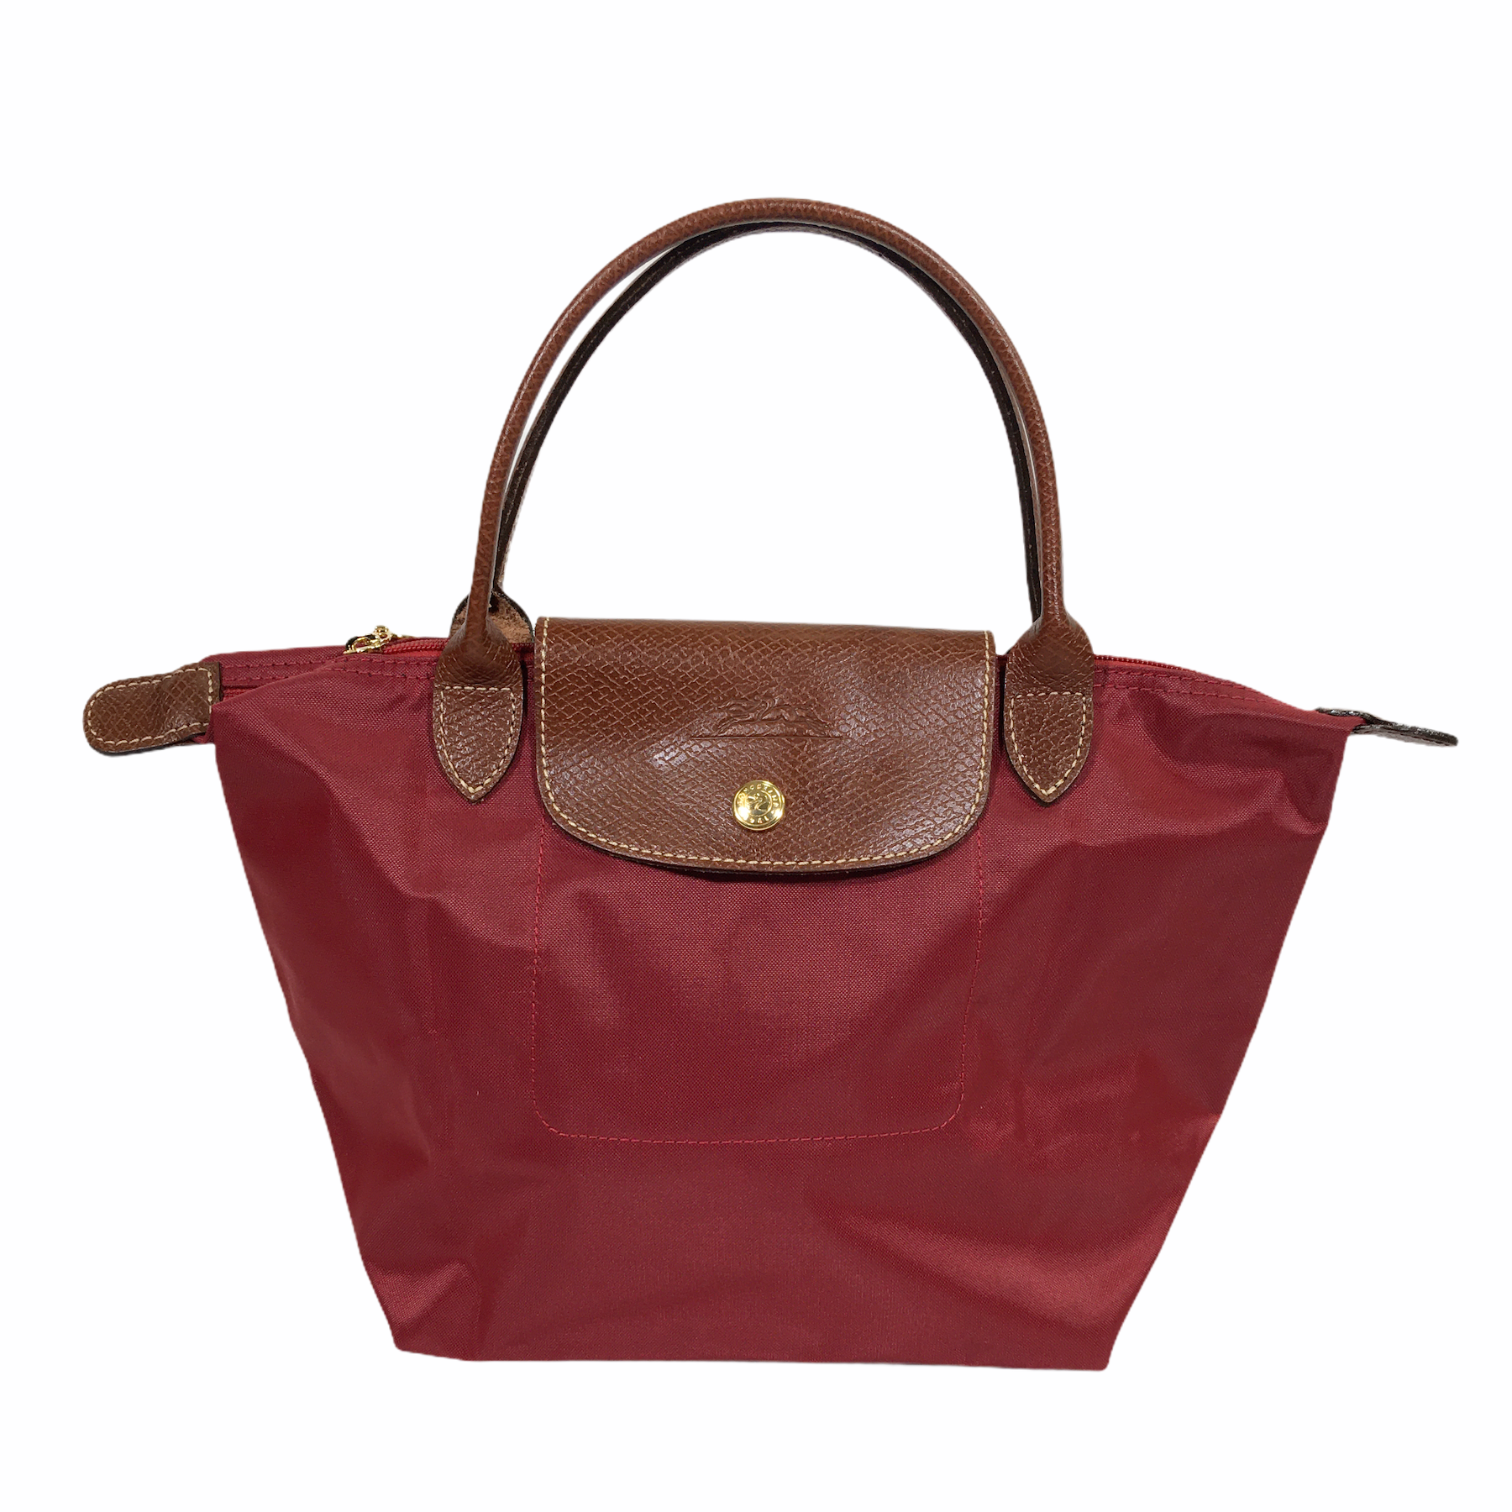 Longchamp Small Shoulder, Red, Size: Totes